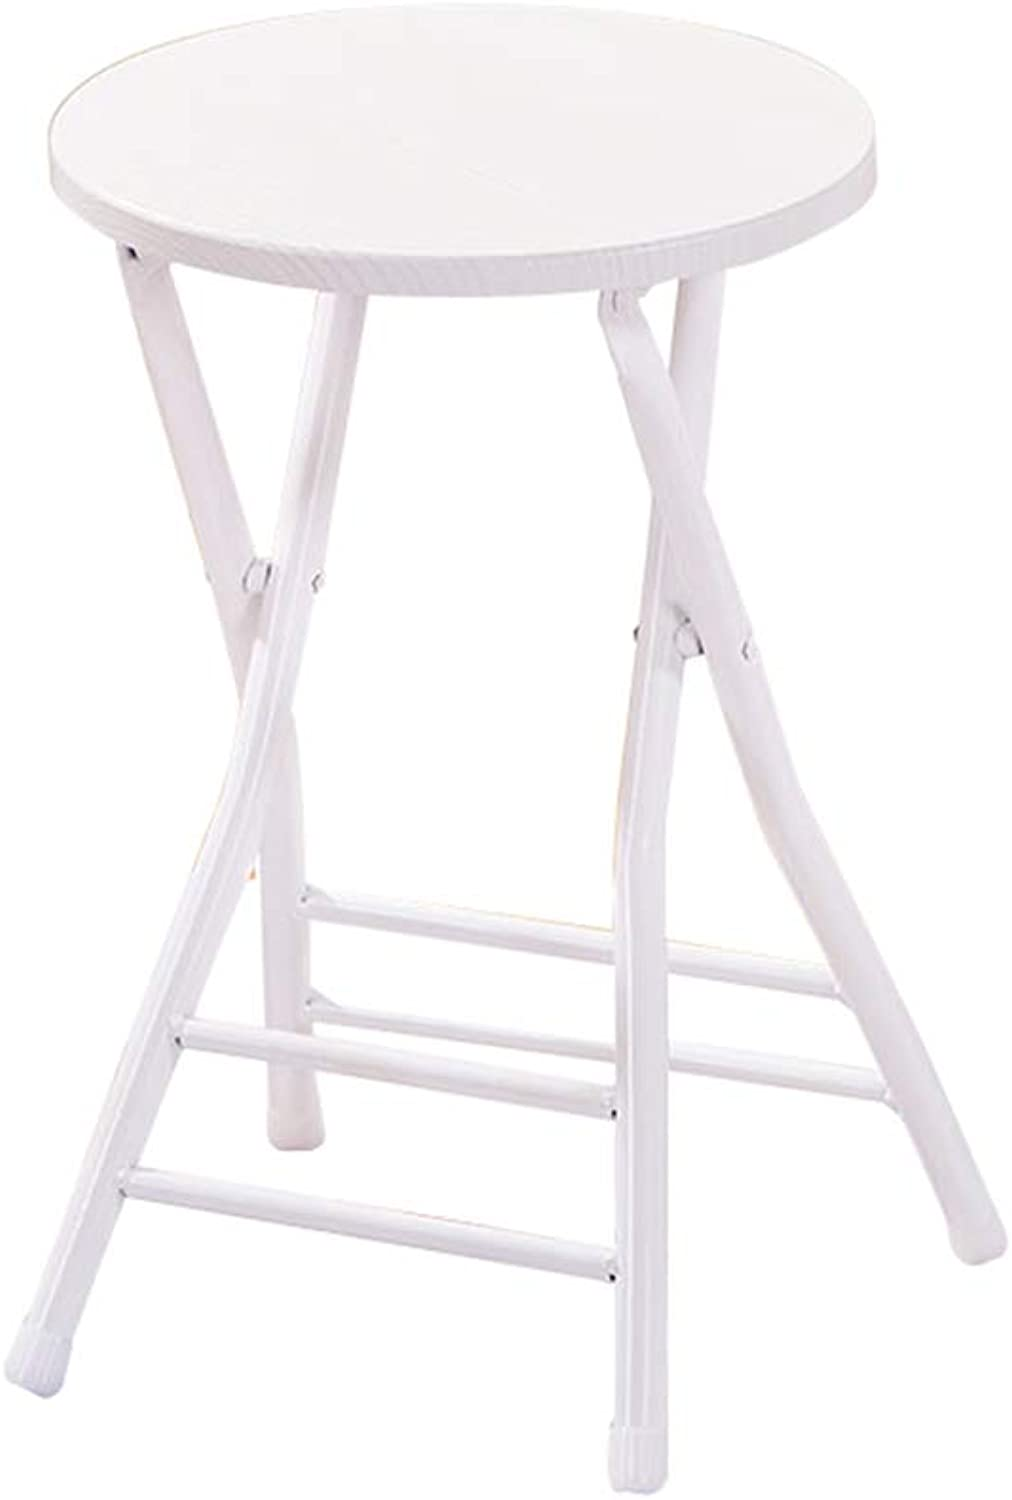 Stool - Folding Chair, Household Dining Table and Chair, Modern Minimalist Stool Portable Desk Chair (color   A)